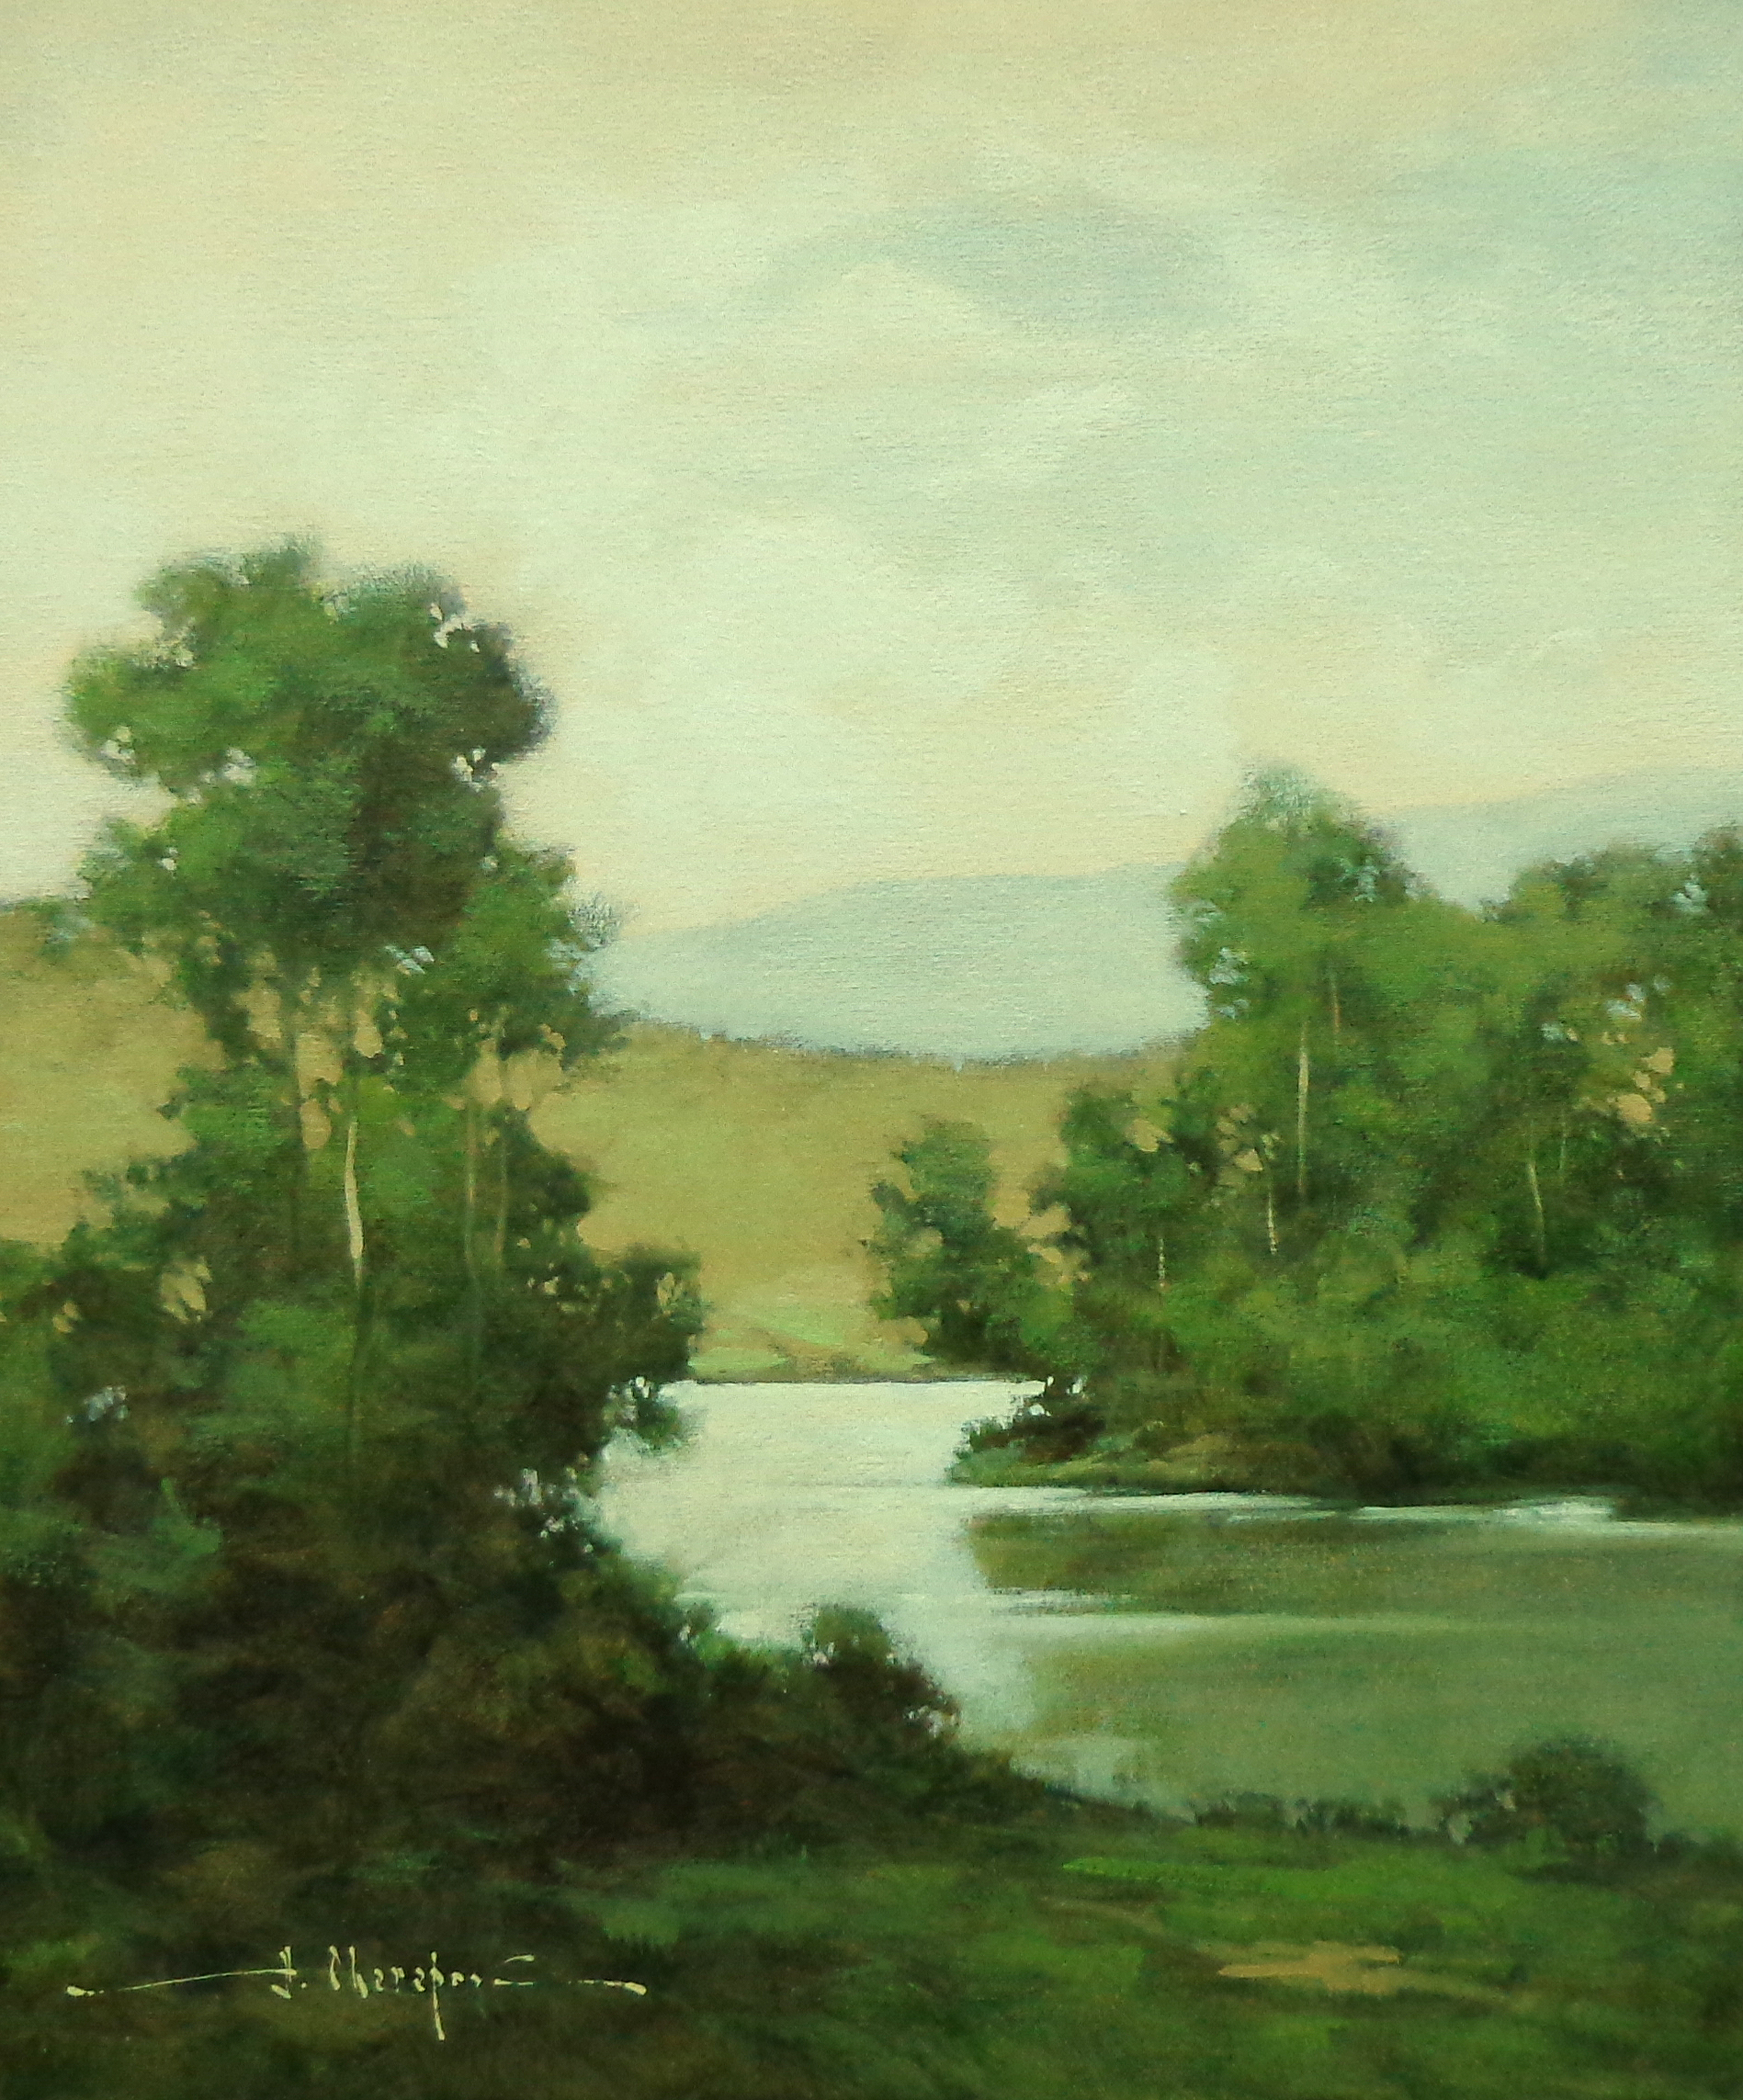 Bank of the River 16x24